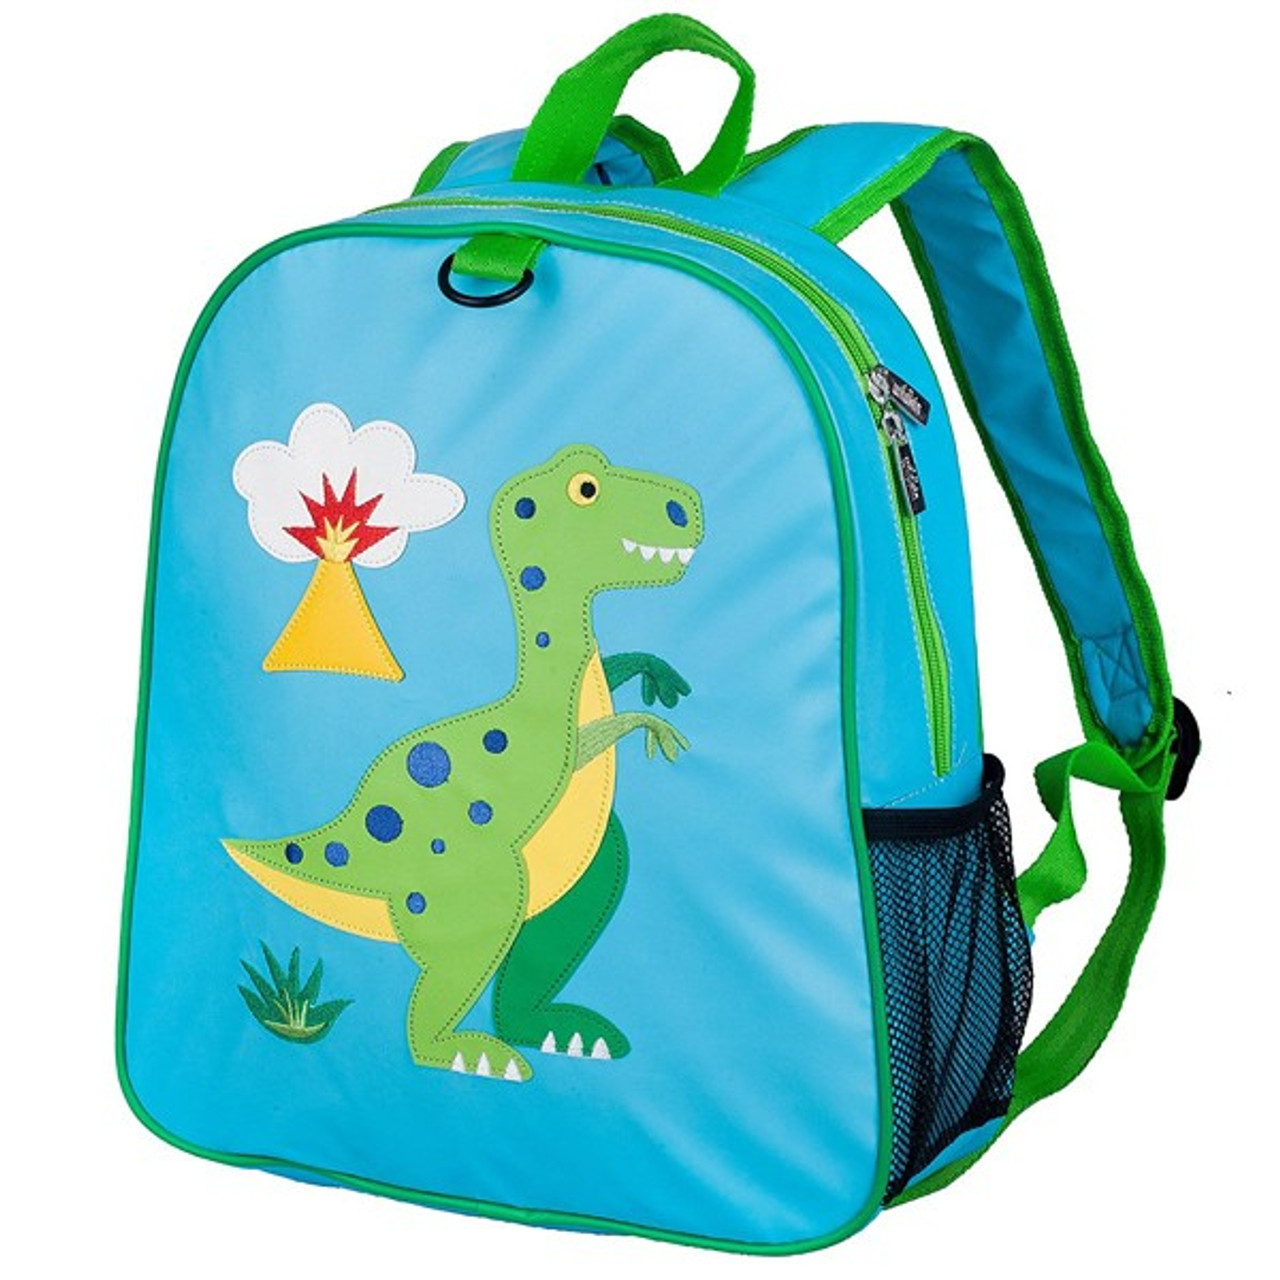 Wildkin Embroidered Kids Backpack - Dinosaur 2bf475e0f4